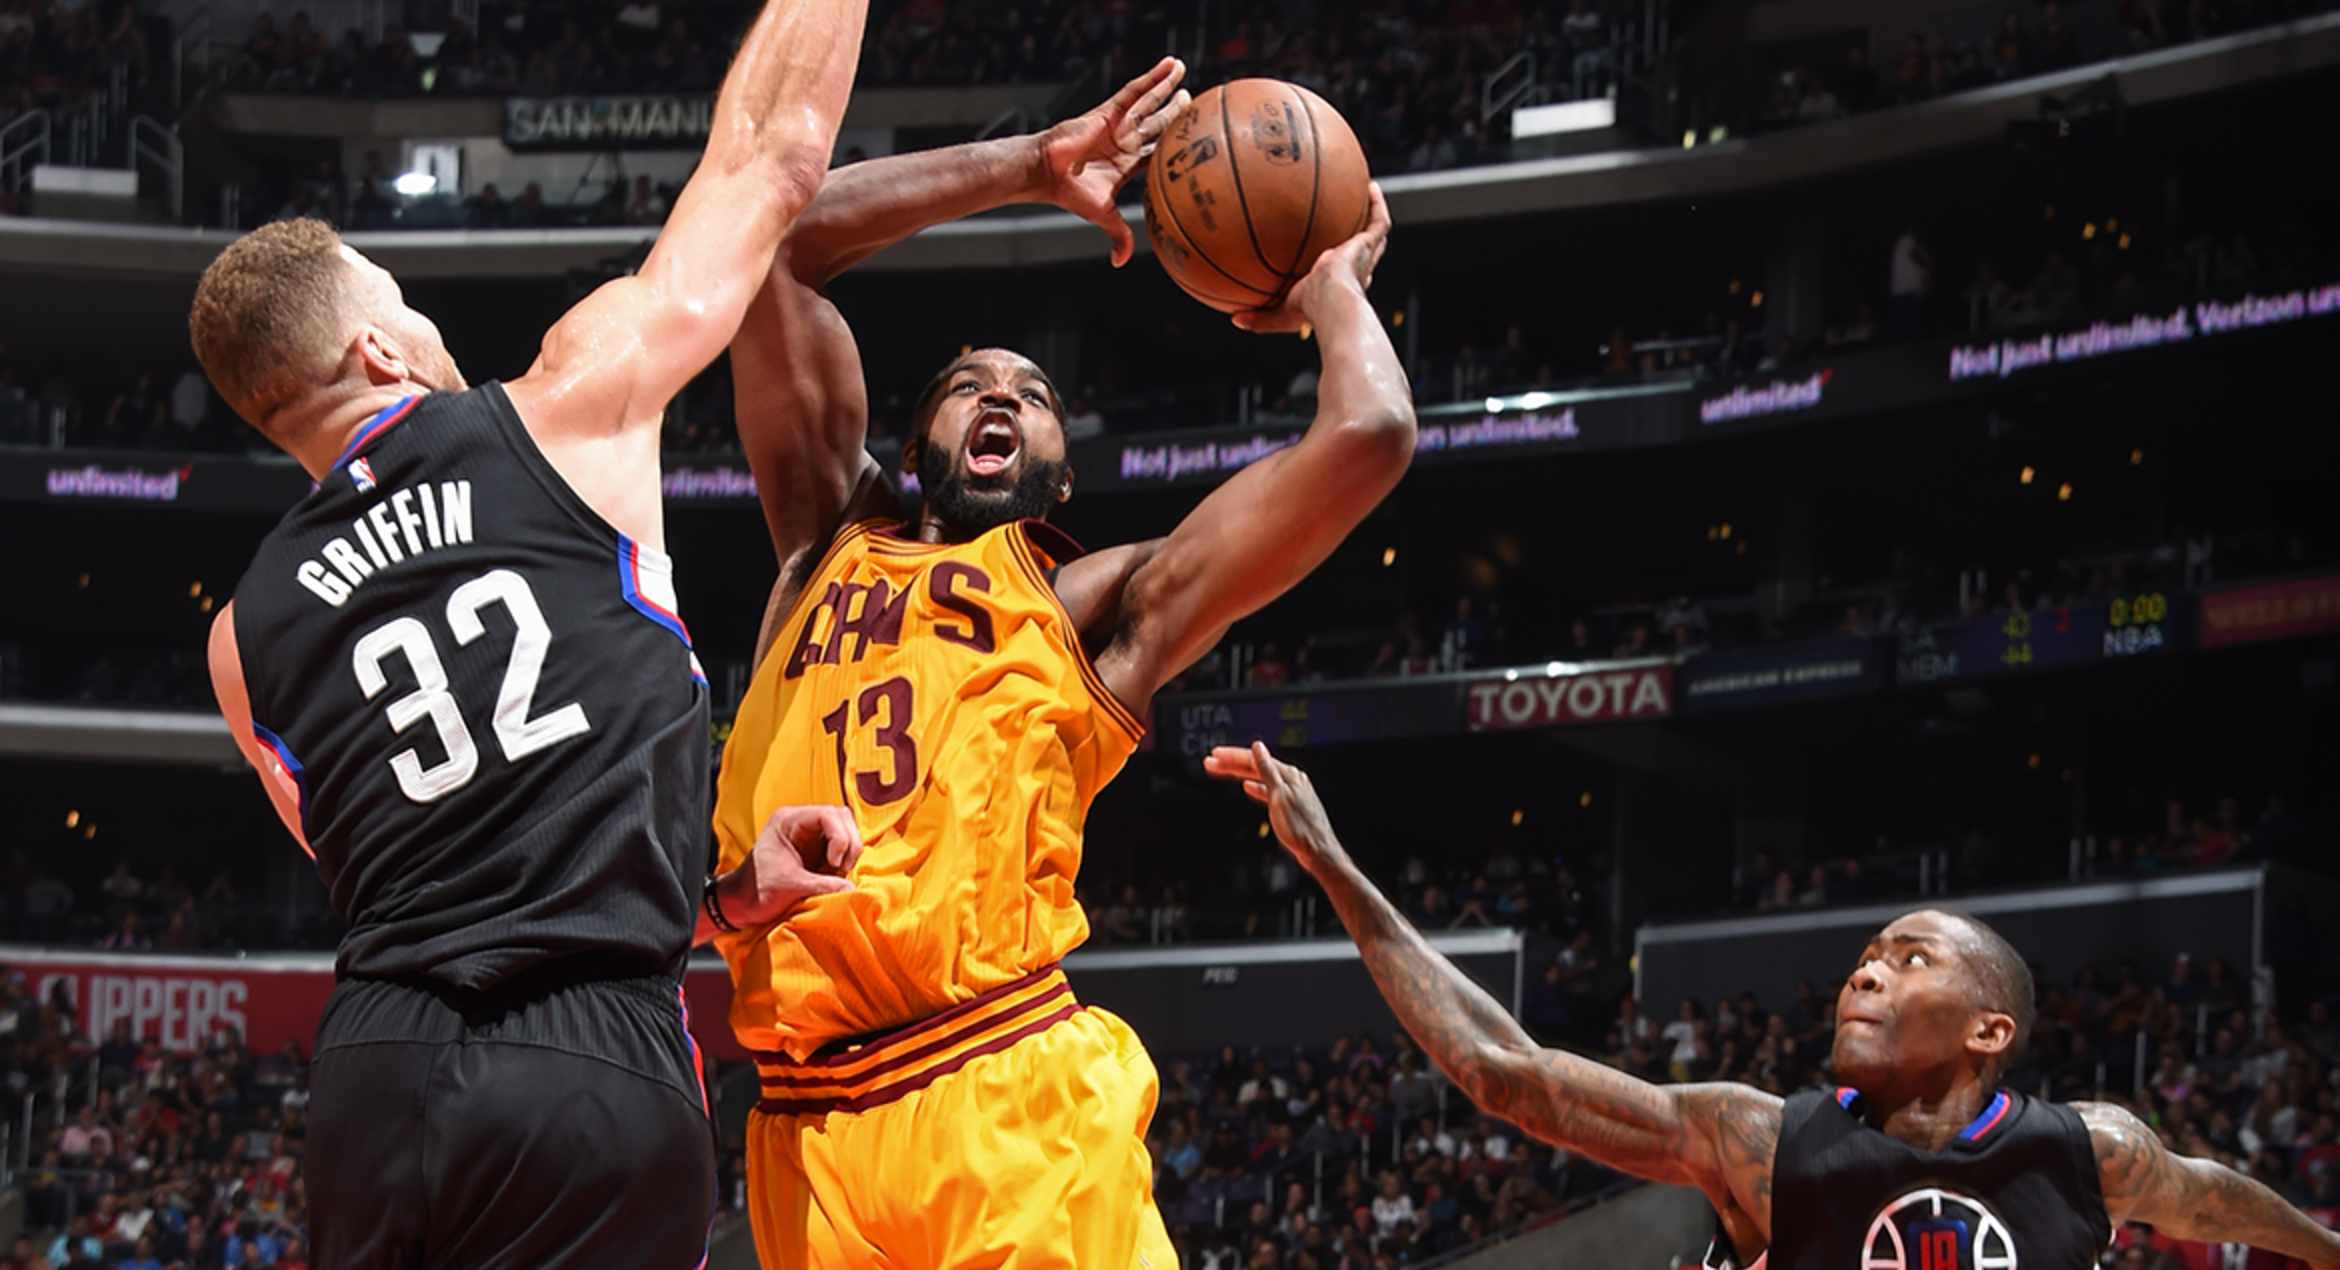 Clippers Defense Stifles Cavaliers Who Sit Big 3, 108-78